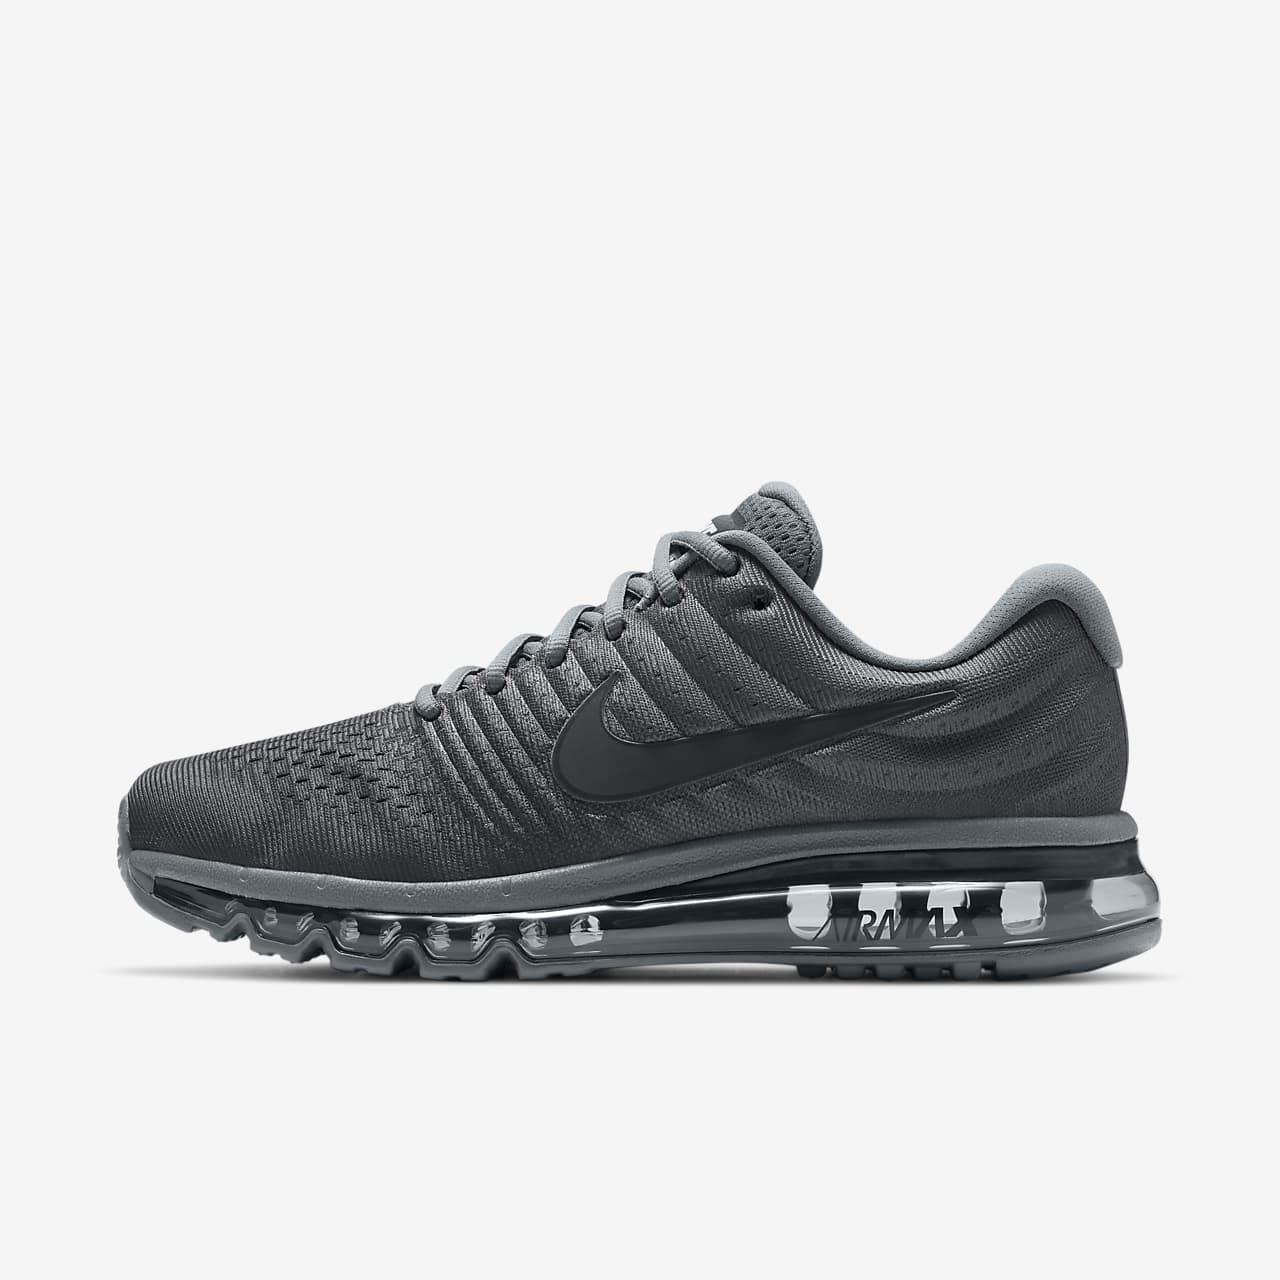 3c9f31bba7d7d6 Nike Air Max 2017 Men s Shoe. Nike.com